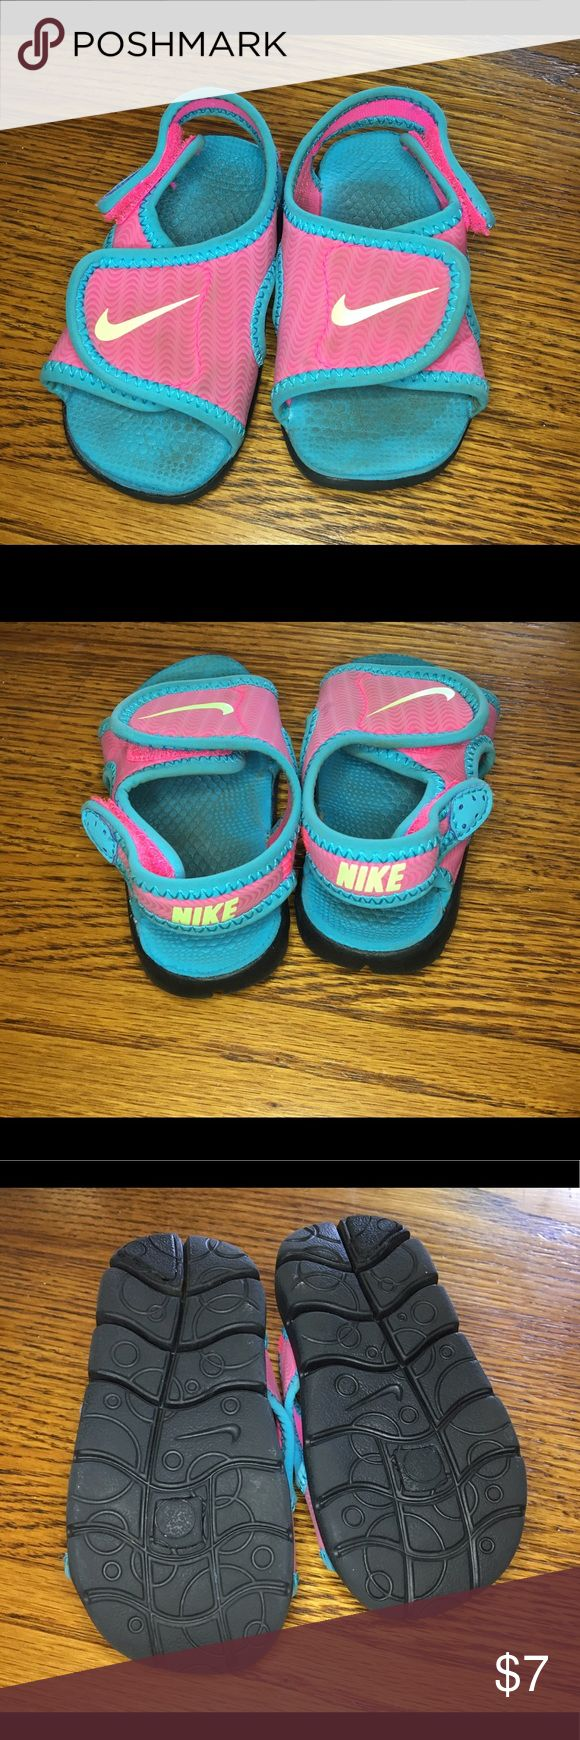 Size 4 Nike Water shoes Nike water shoes just in time for summer. The double Velcro is perfect for those wiggly toddlers, just slap me on and go Nike Shoes Water Shoes